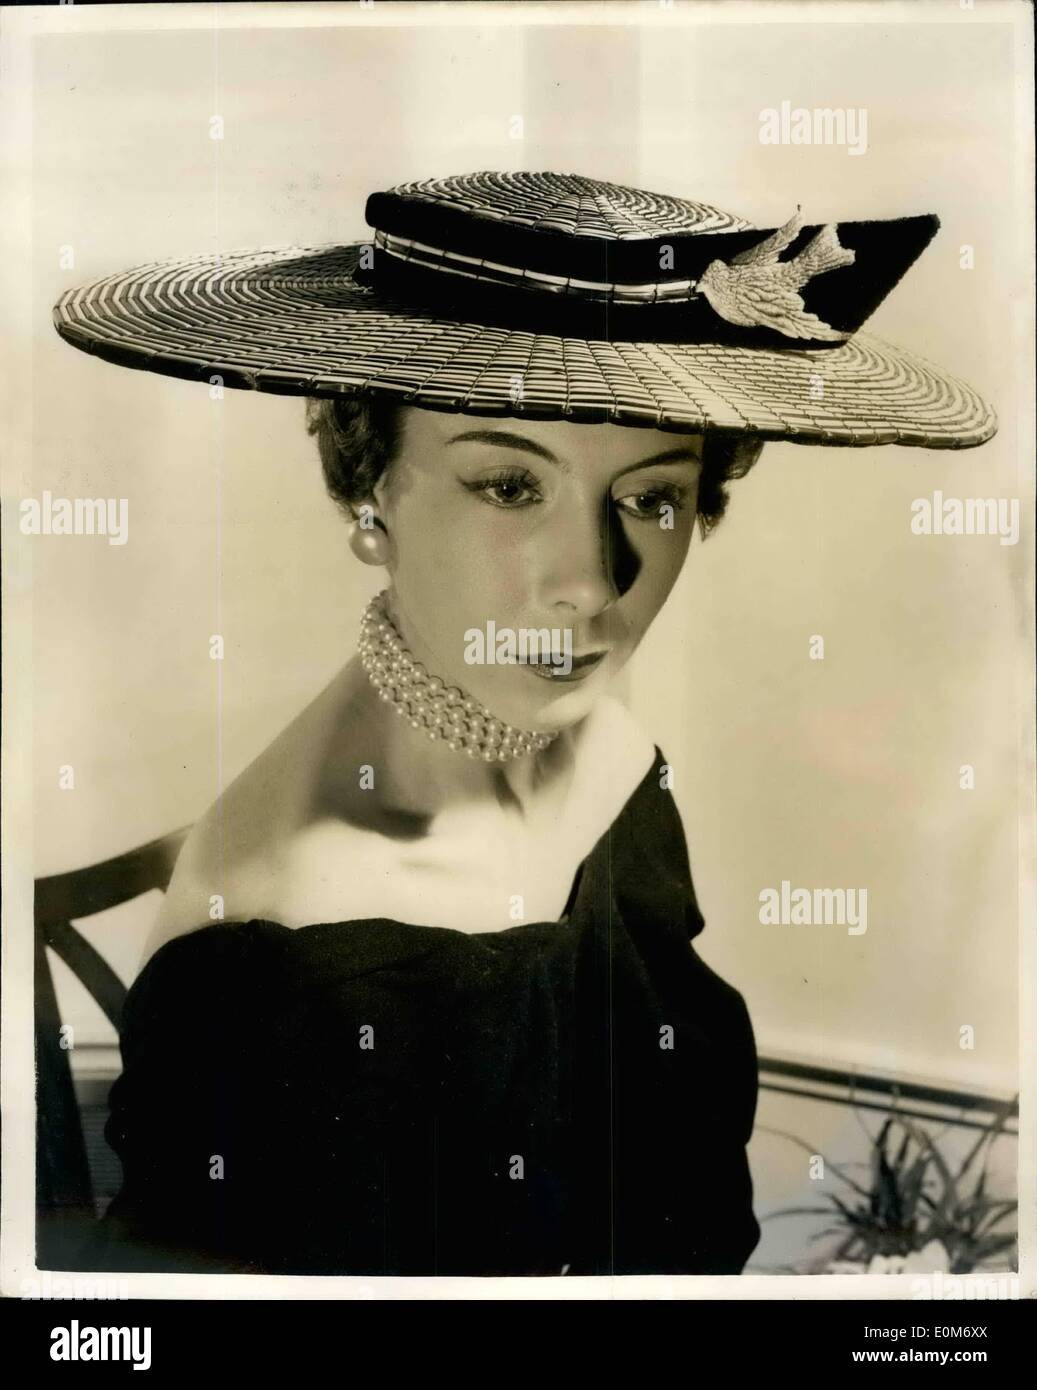 Nov. 09, 1953 - 9-11-53 Model Millinery on show in London. keystone Photo Shows: A most unusual hat in bamboo straw in navy and - Stock Image